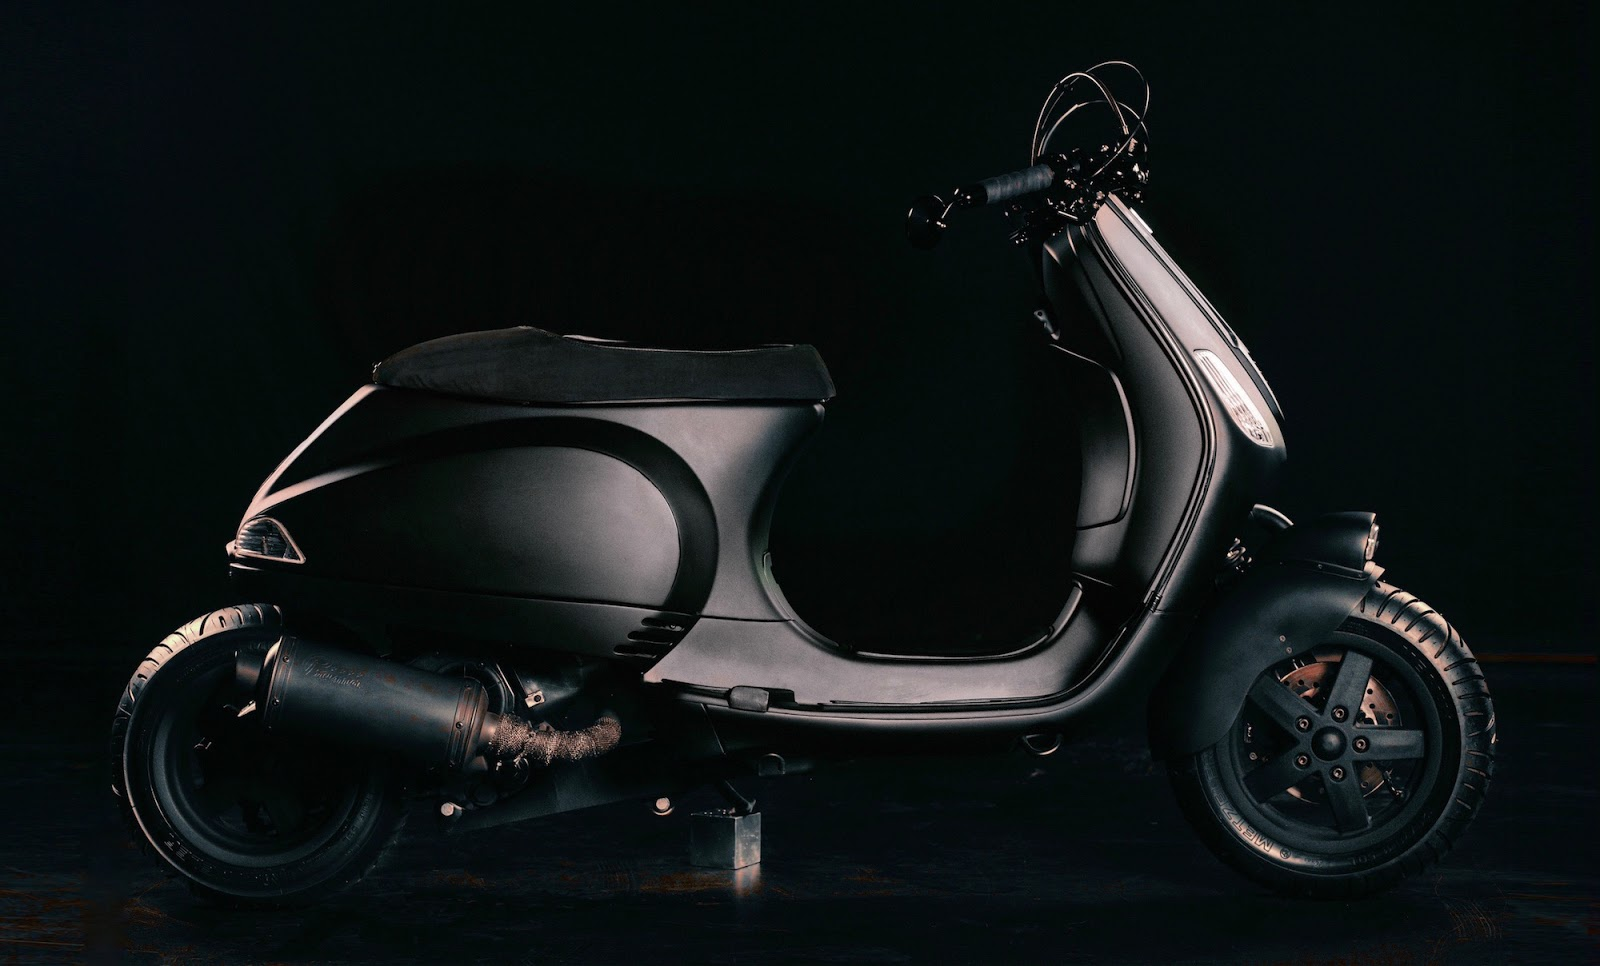 Wasp inazuma caf racer for Vespa cafe racer